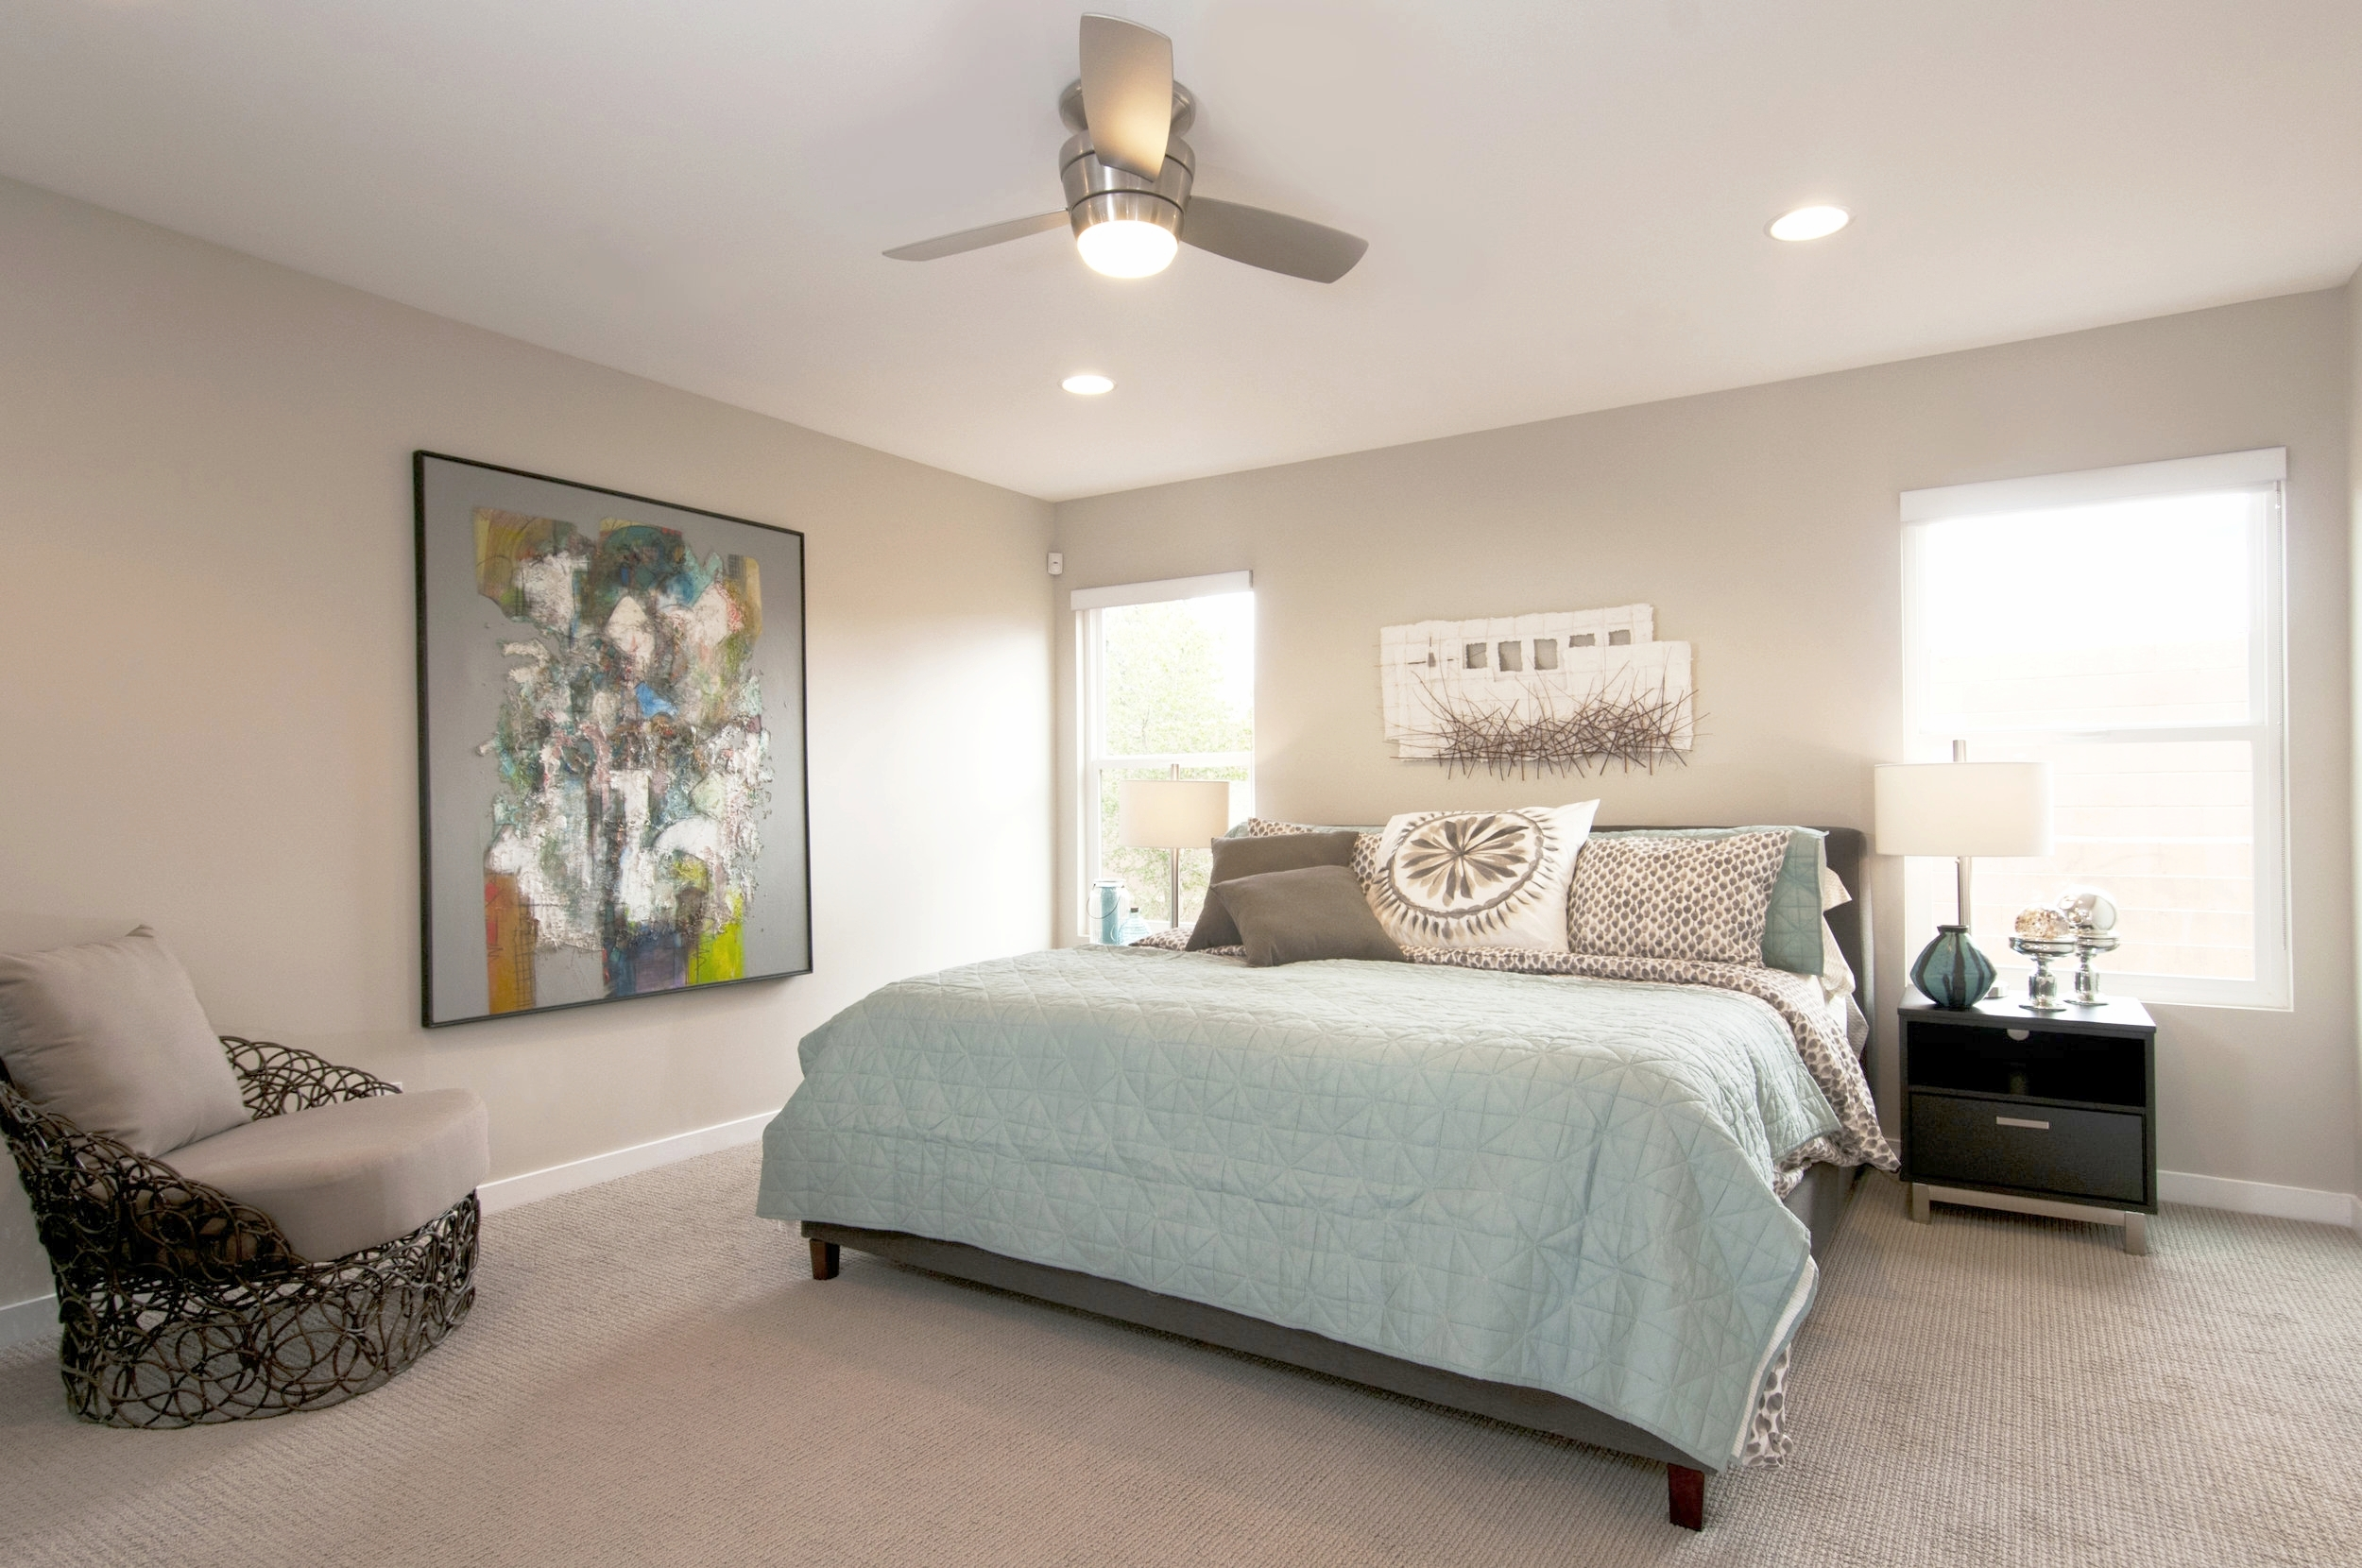 Master Bedroom Parade of Homes.jpg